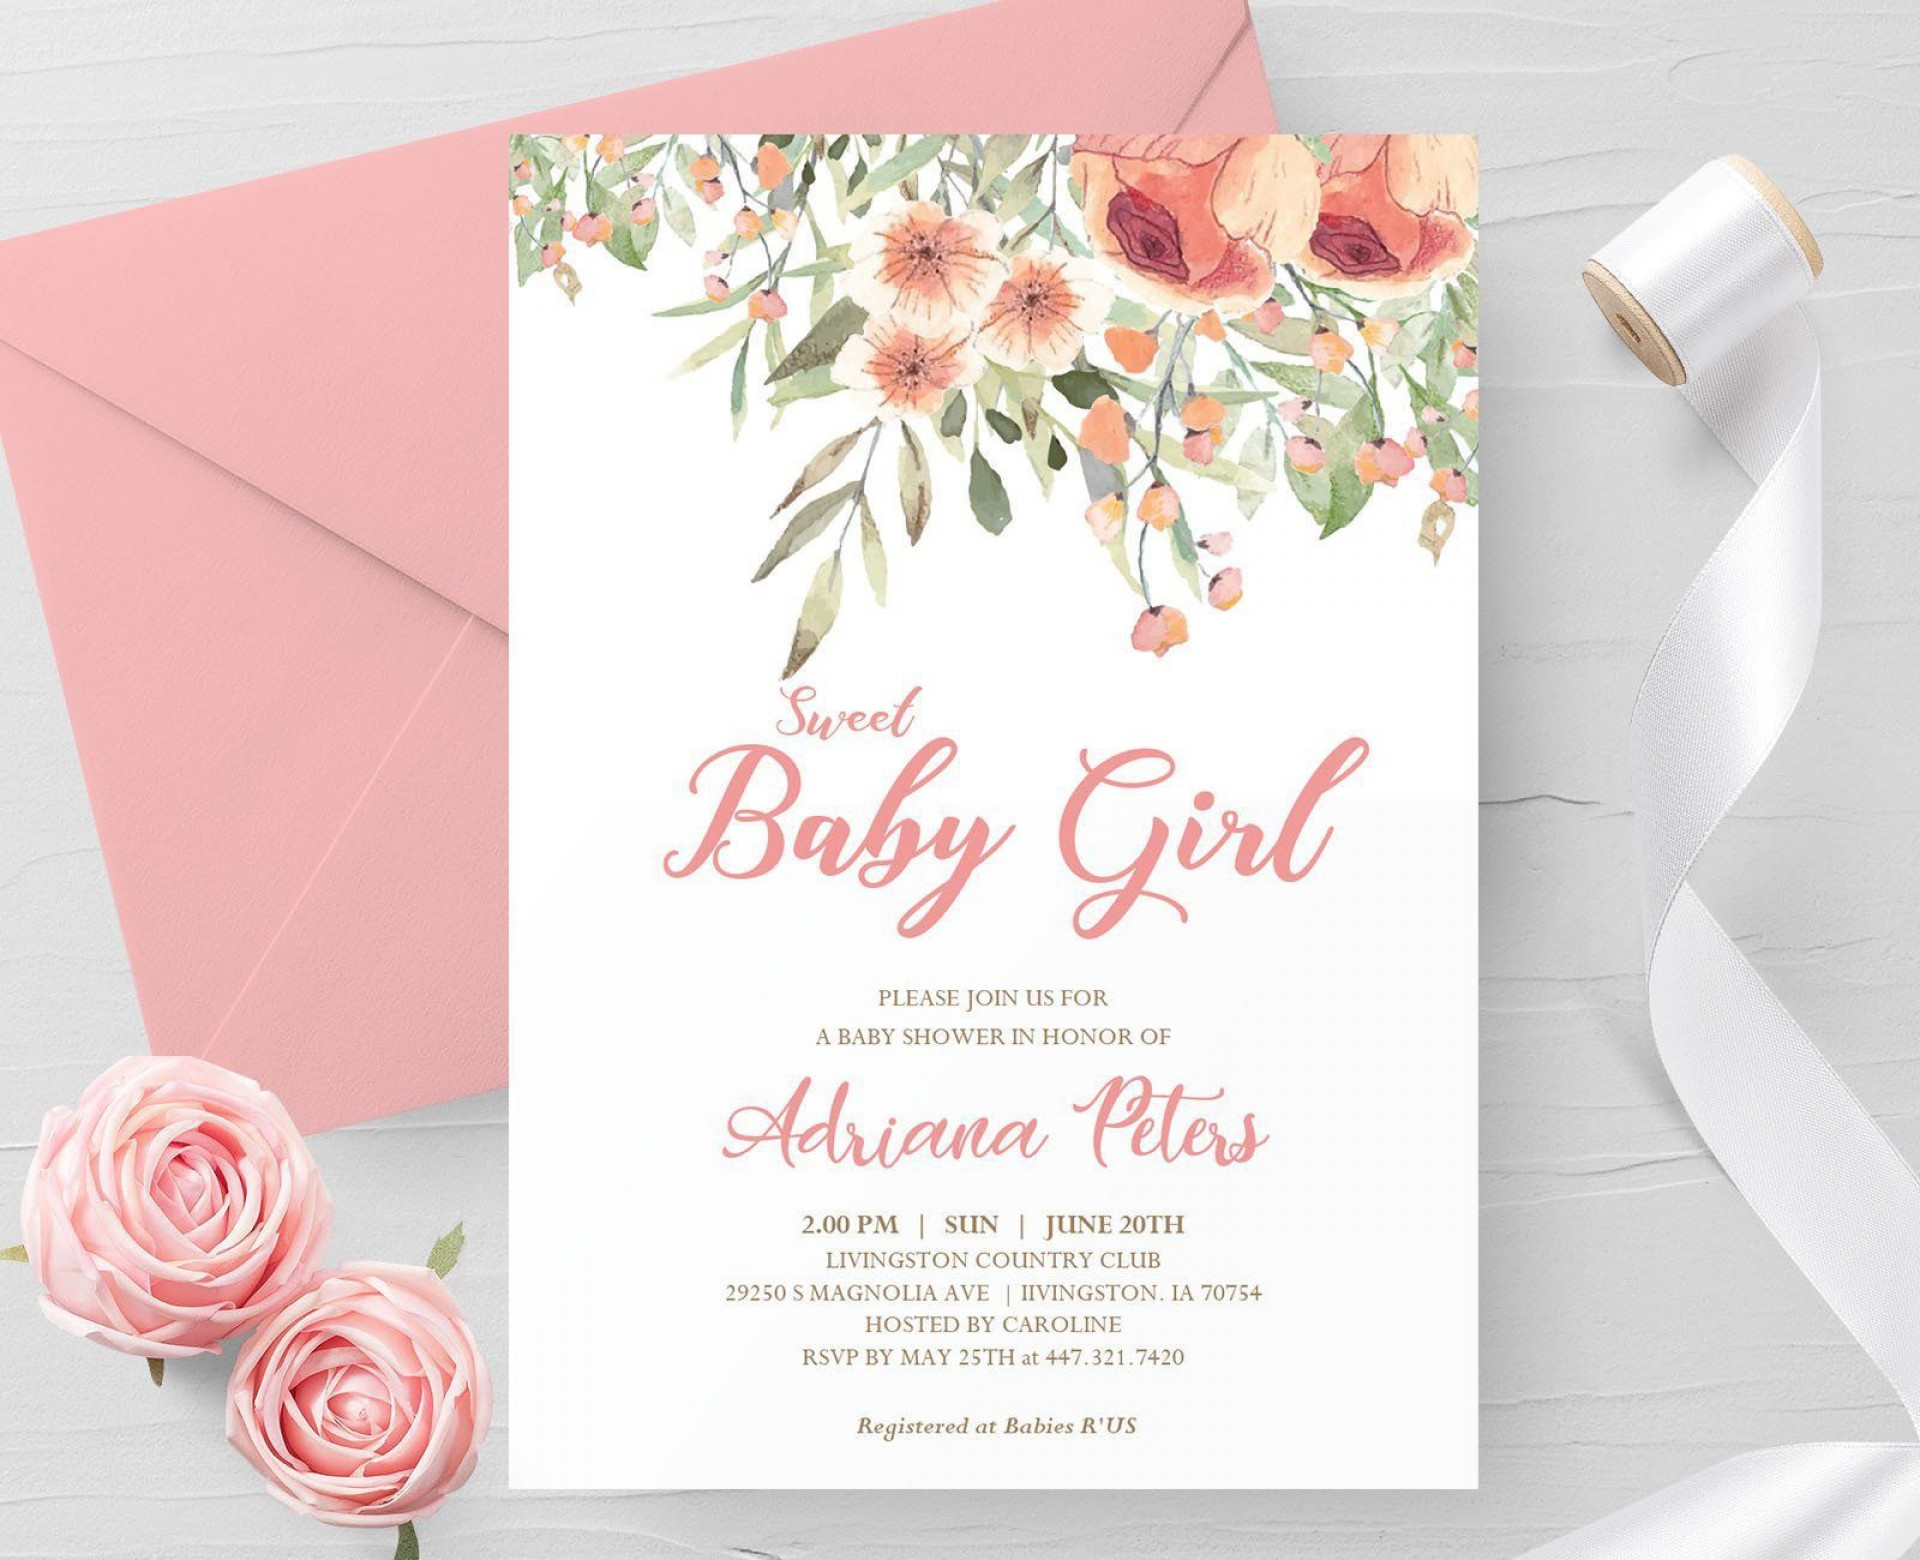 000 Excellent Free Editable Baby Shower Invitation Template For Word Concept  Microsoft1920